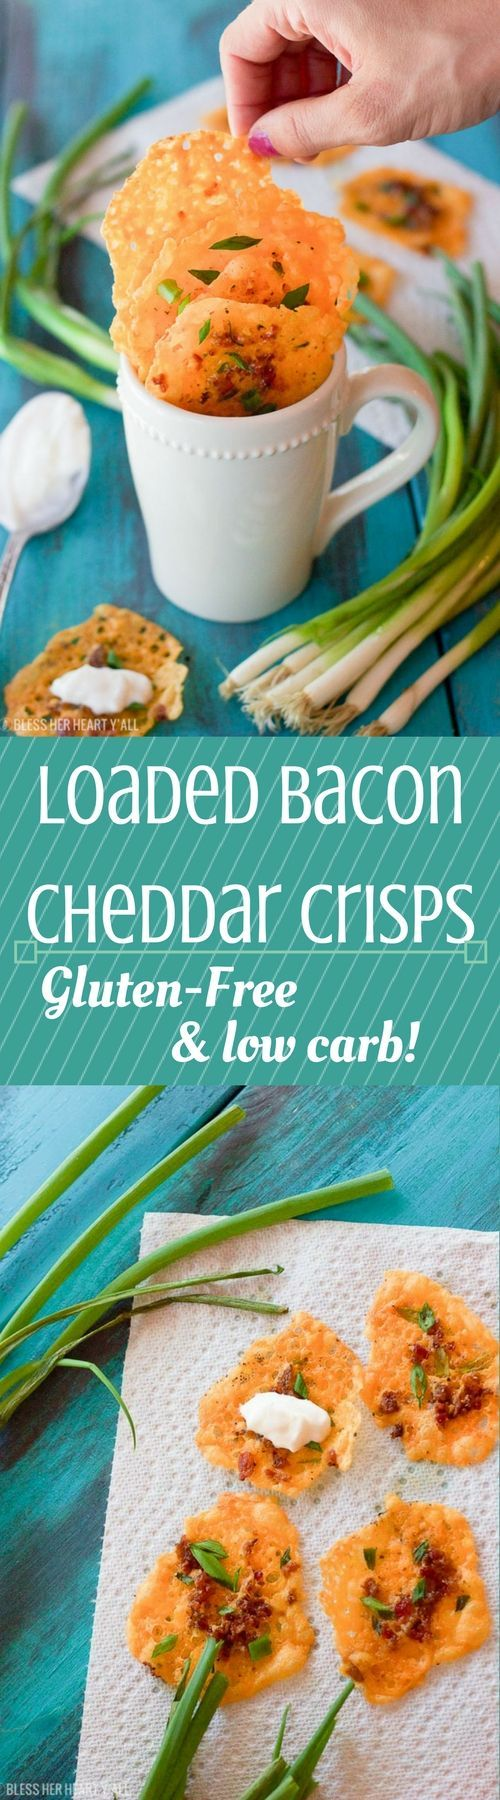 Loaded Bacon Cheddar Crisps